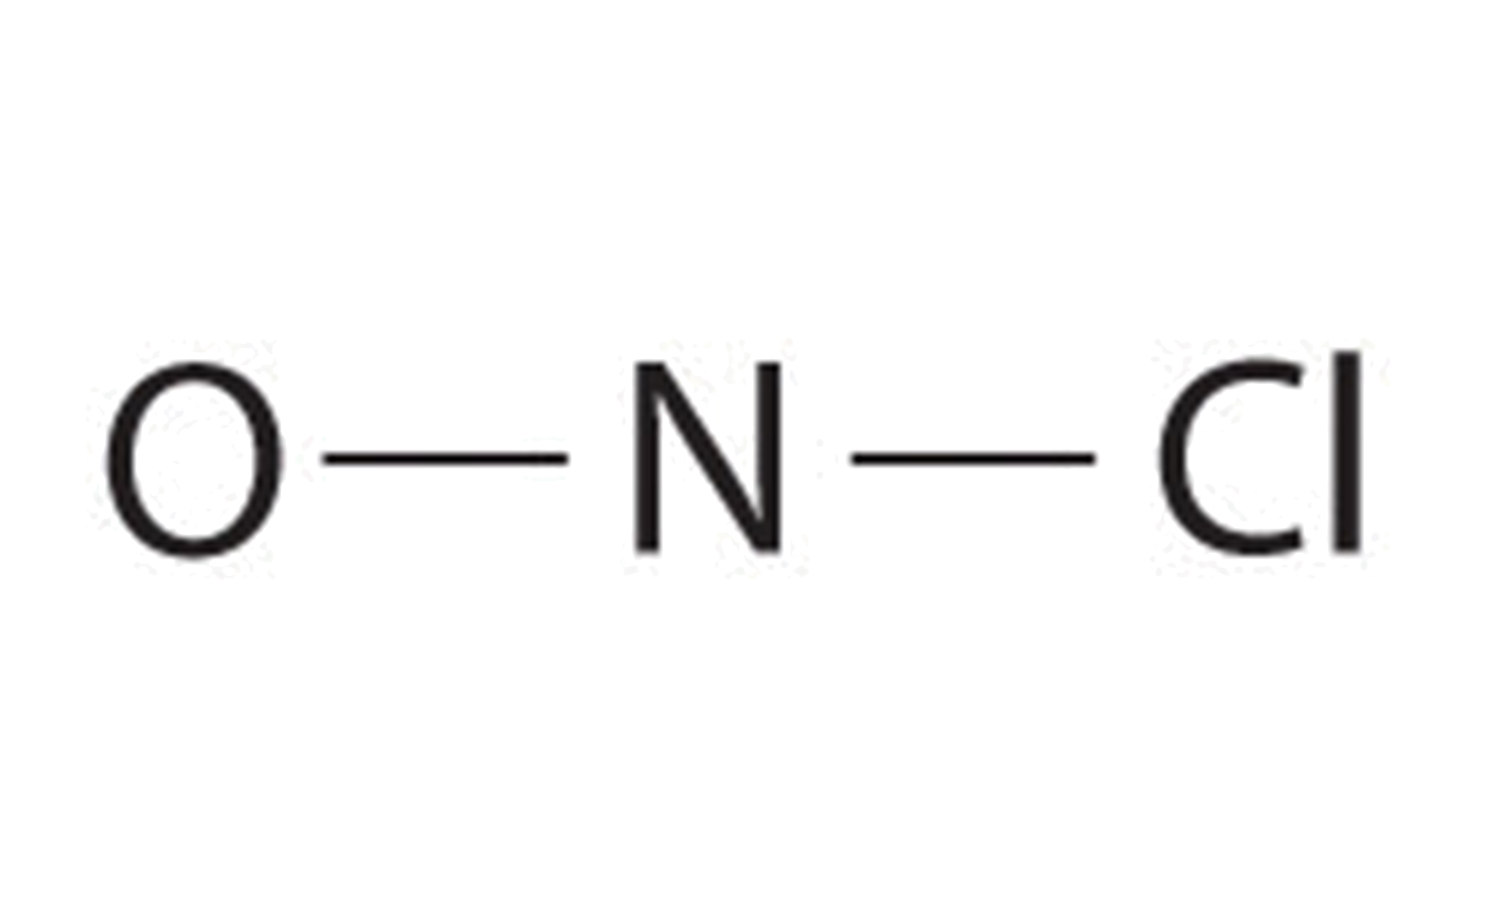 nitrosyl chloride with only bond lines drawn.